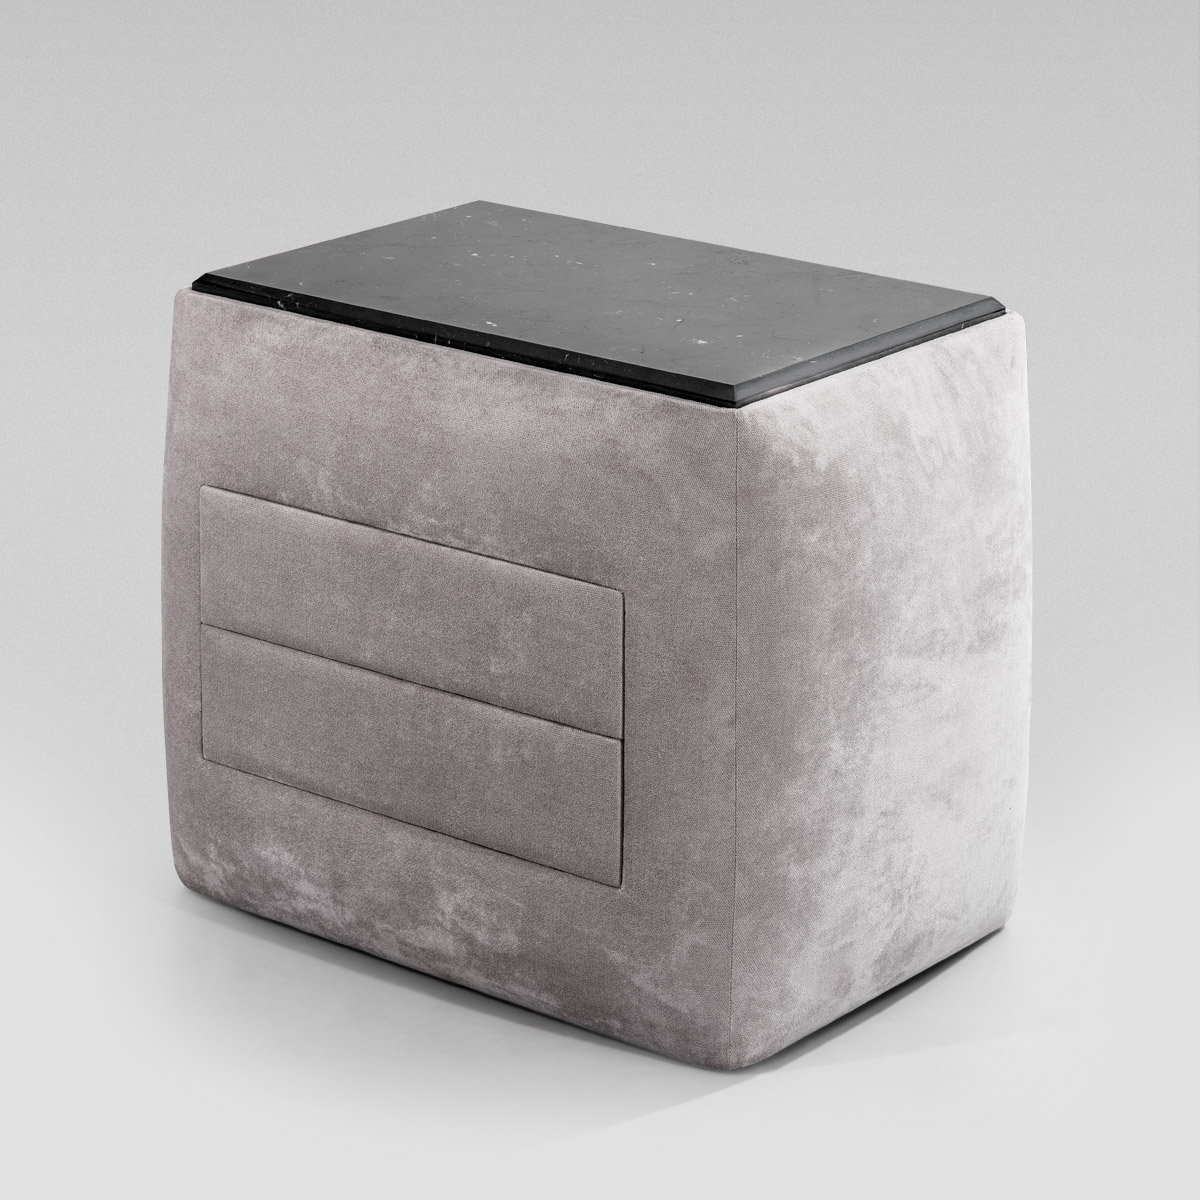 rounded 60 Table de Nuit Rounded 60 colunex rounded60 side table 01 1